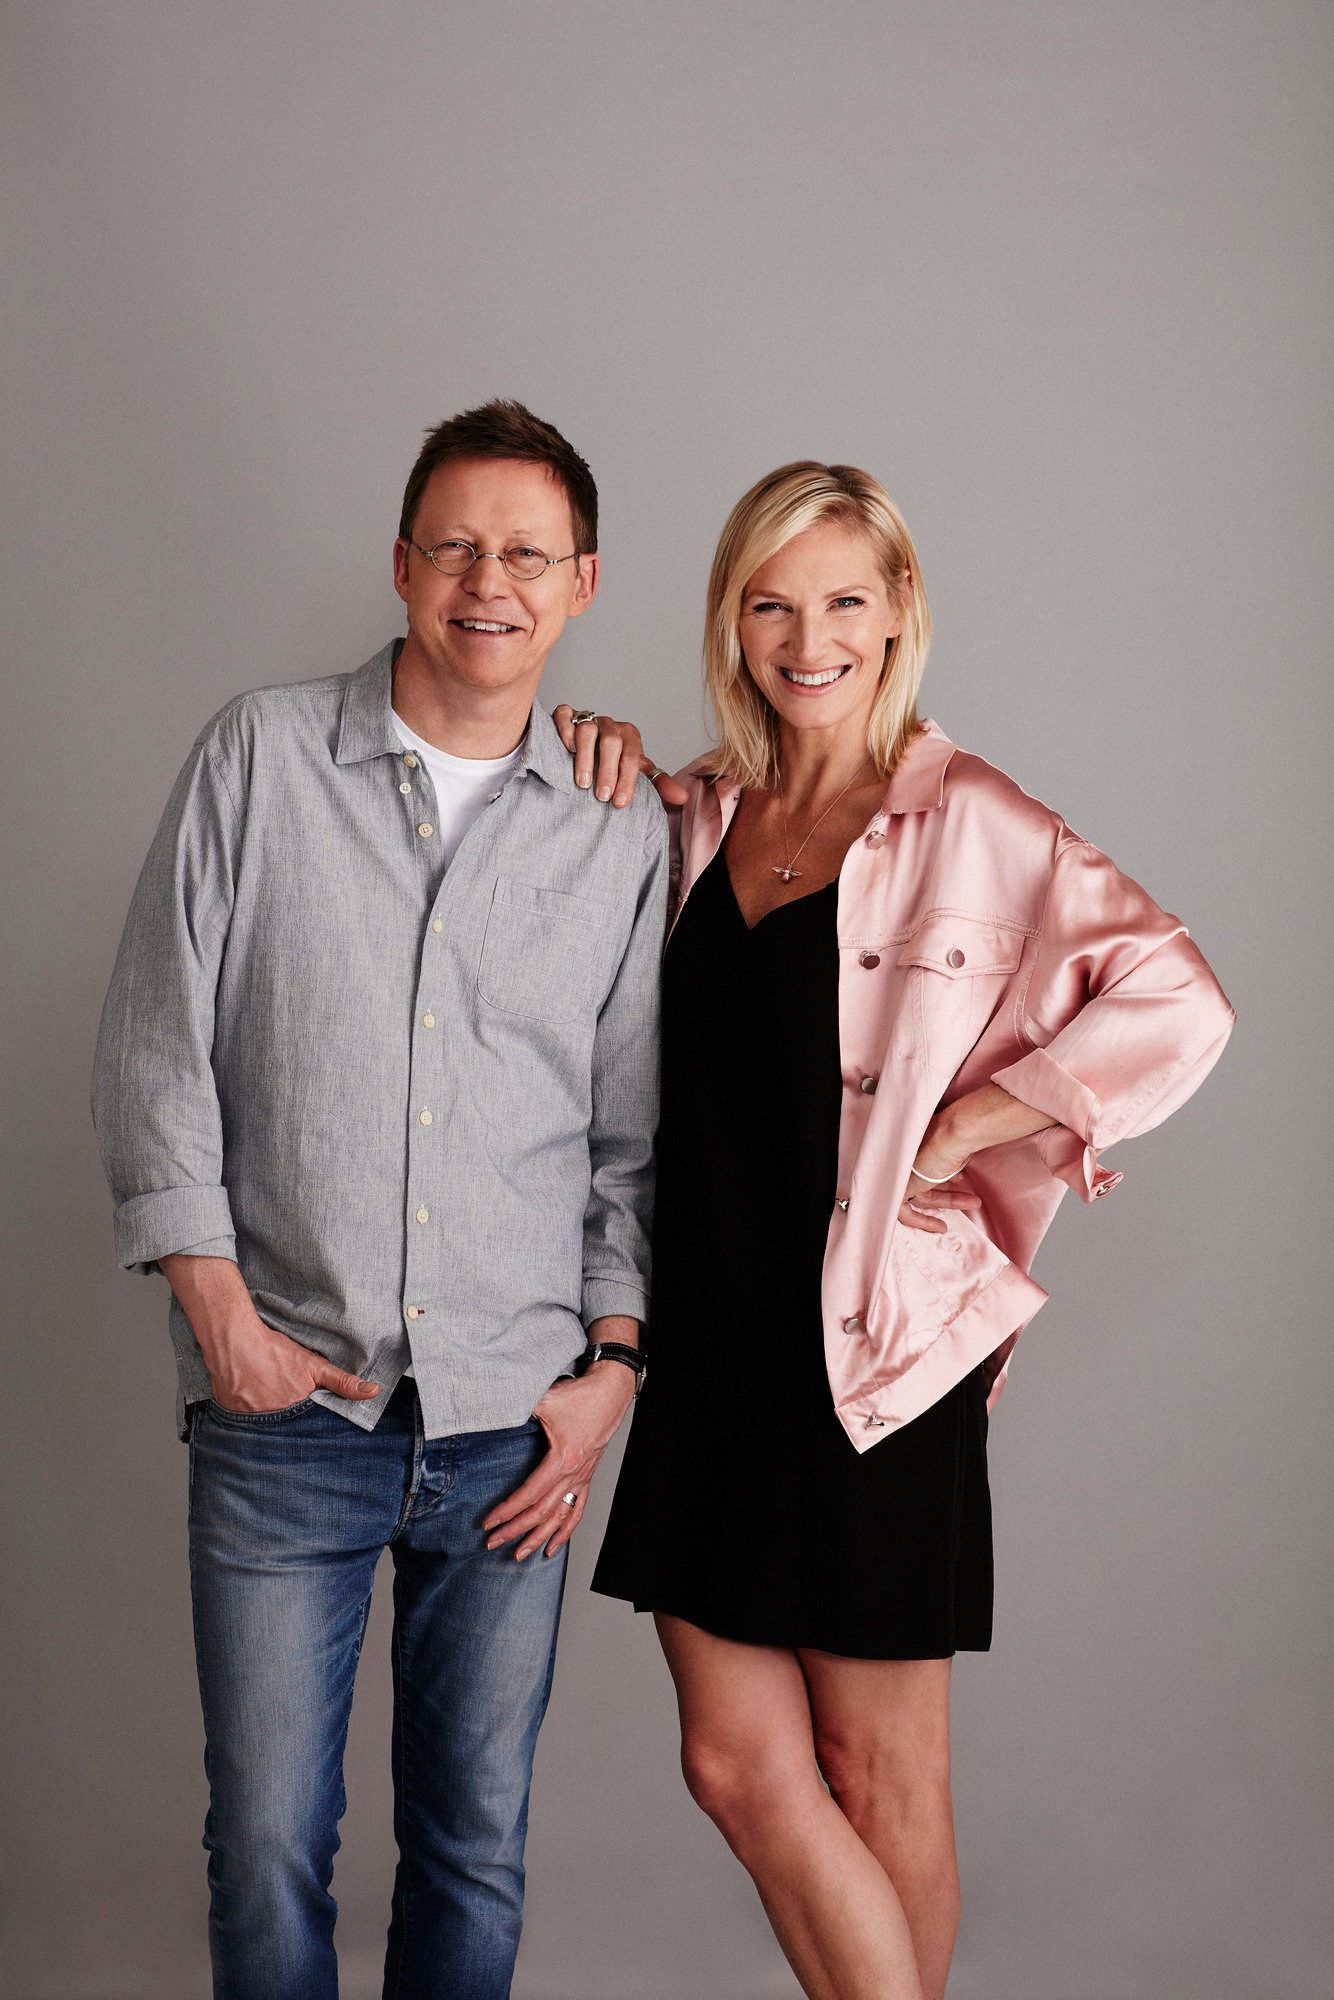 Simon Mayo Calls Out 'Appalling' Abuse Of Jo Whiley After Their Radio 2 Show Is Axed